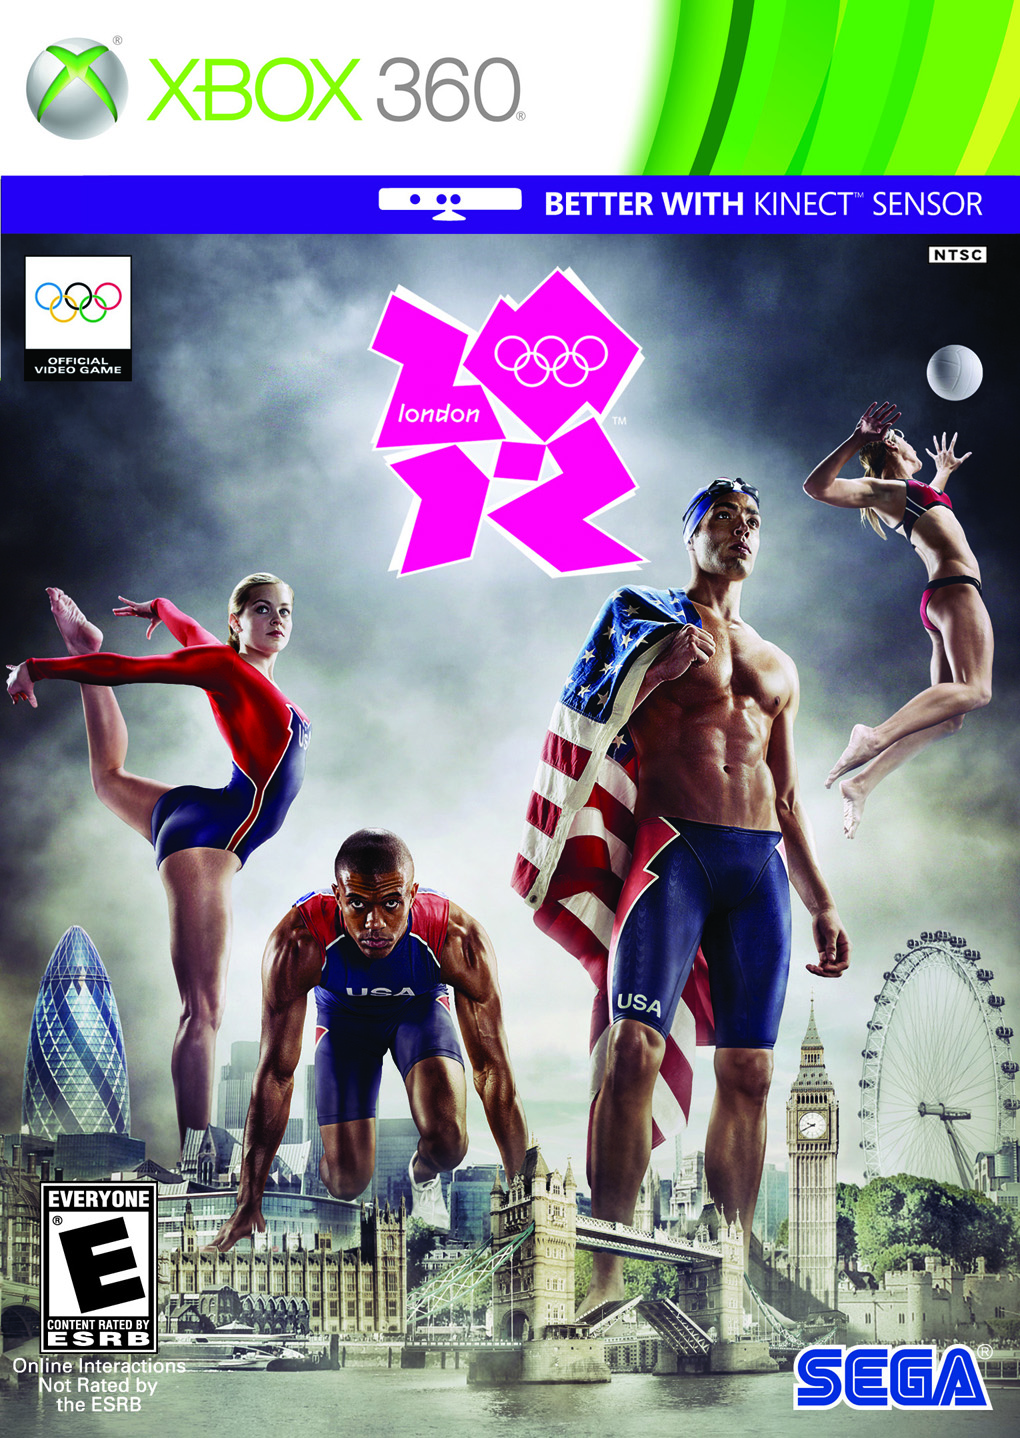 Xbox 360 Games 2012 : The olympics april